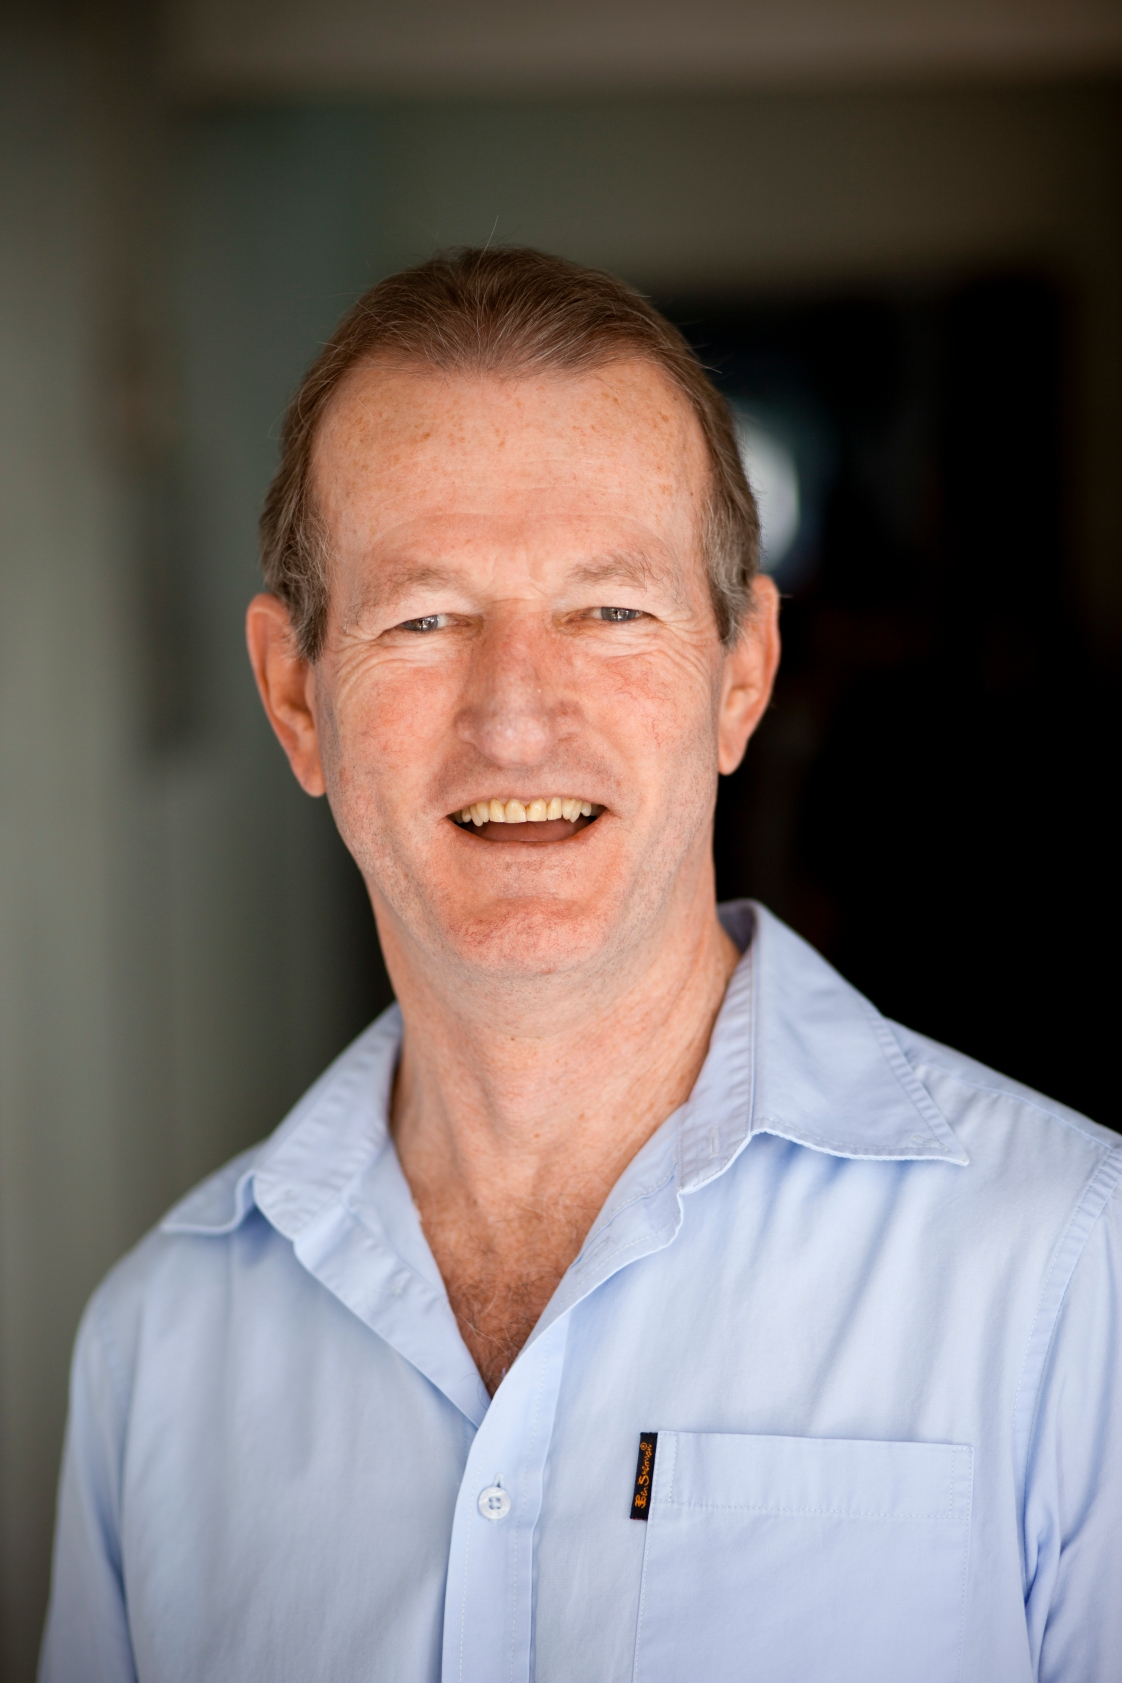 Q&A with Brian Doolan (CEO, The Fred Hollows Foundation)